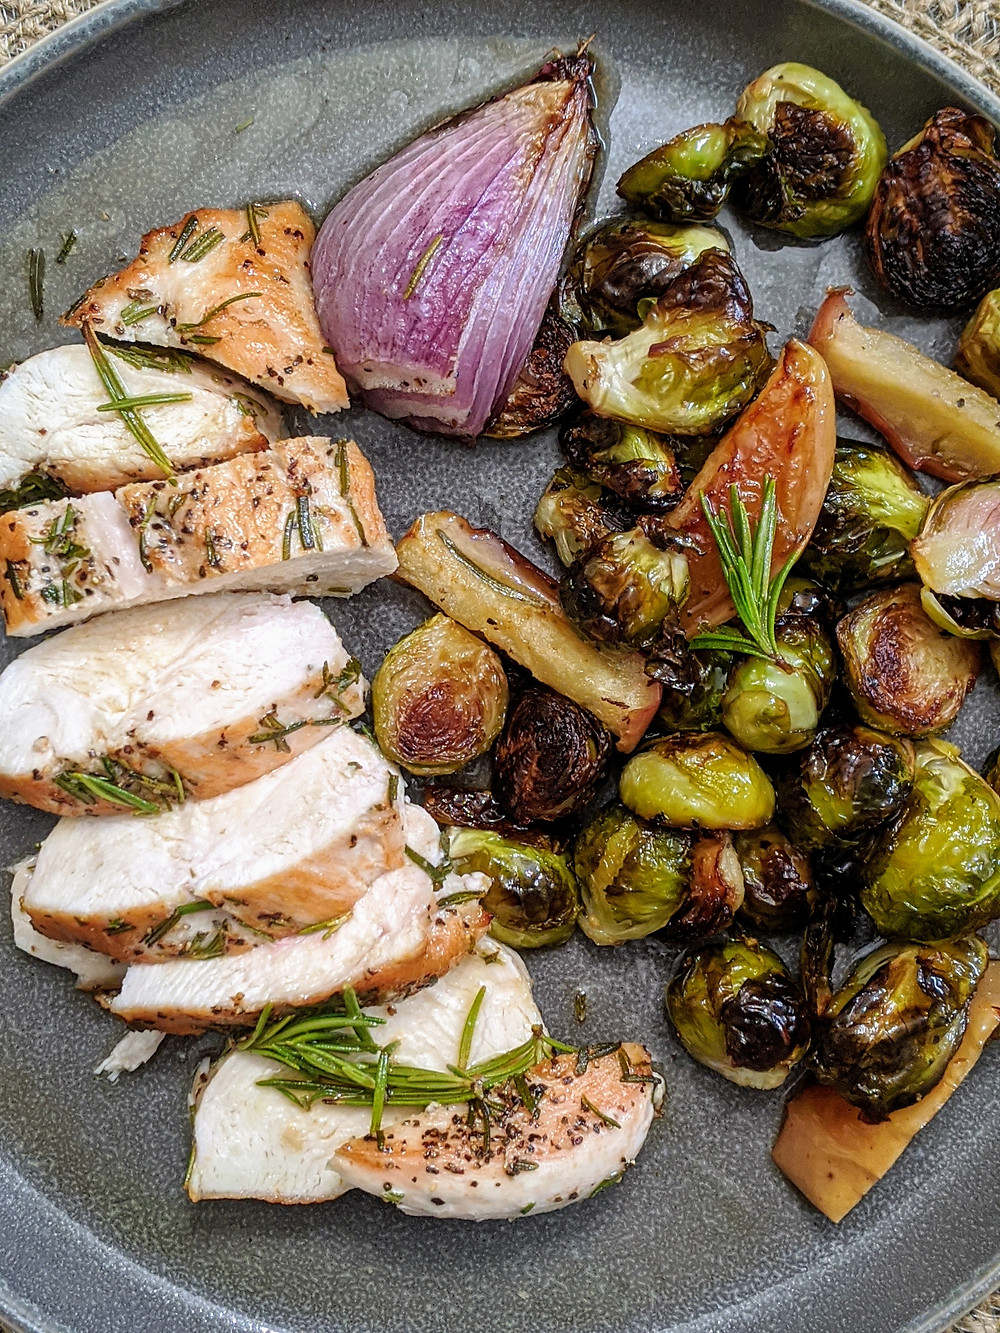 Chicken and Brussels Sprouts with an Apple Cider Sauce - Joseph Centineo - Amanda MacGregor - Food Allergy recipes